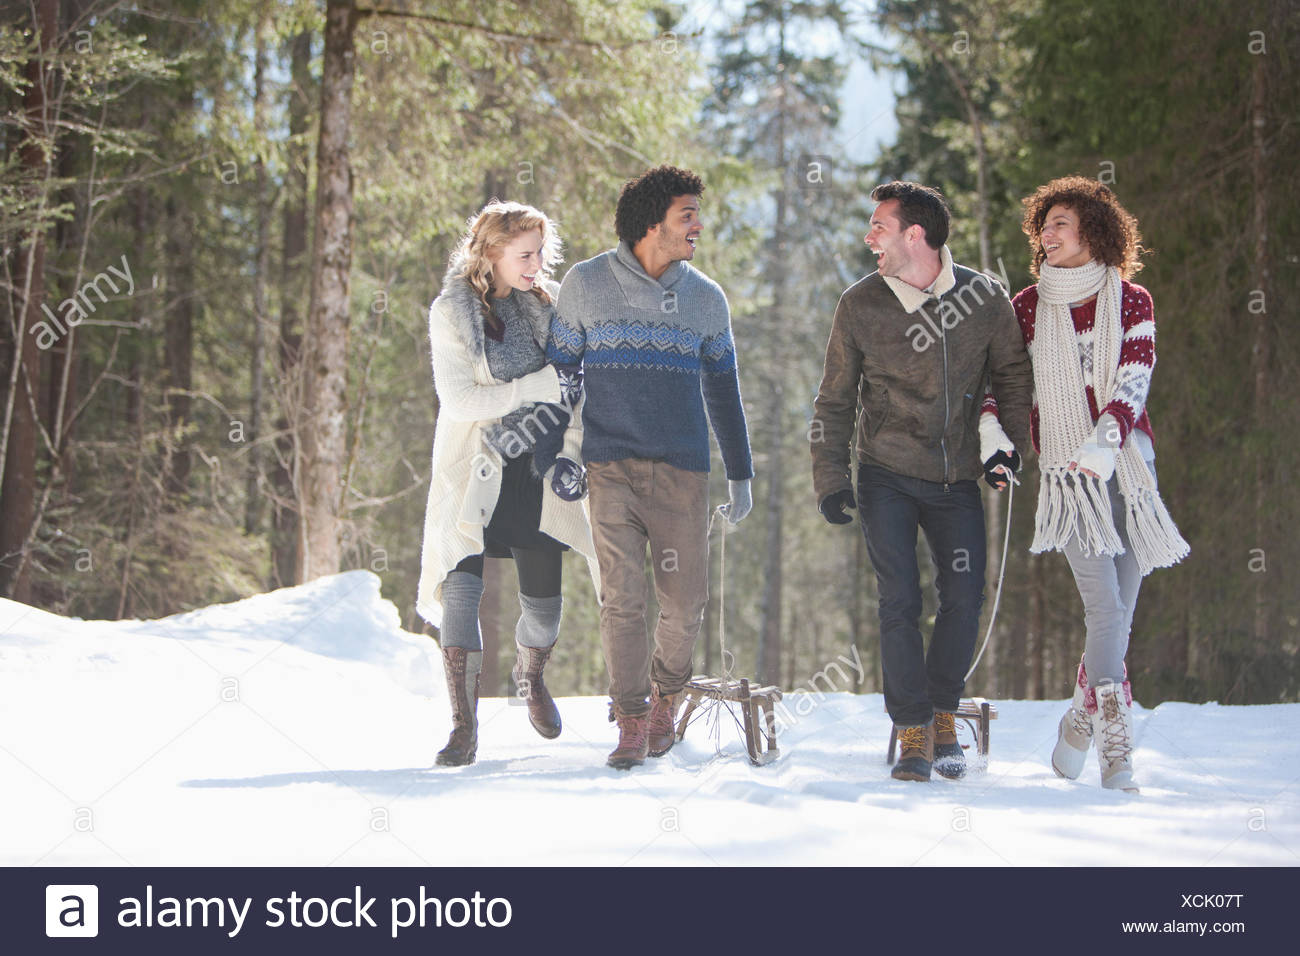 Four people with sled in snowy landscape - Stock Image